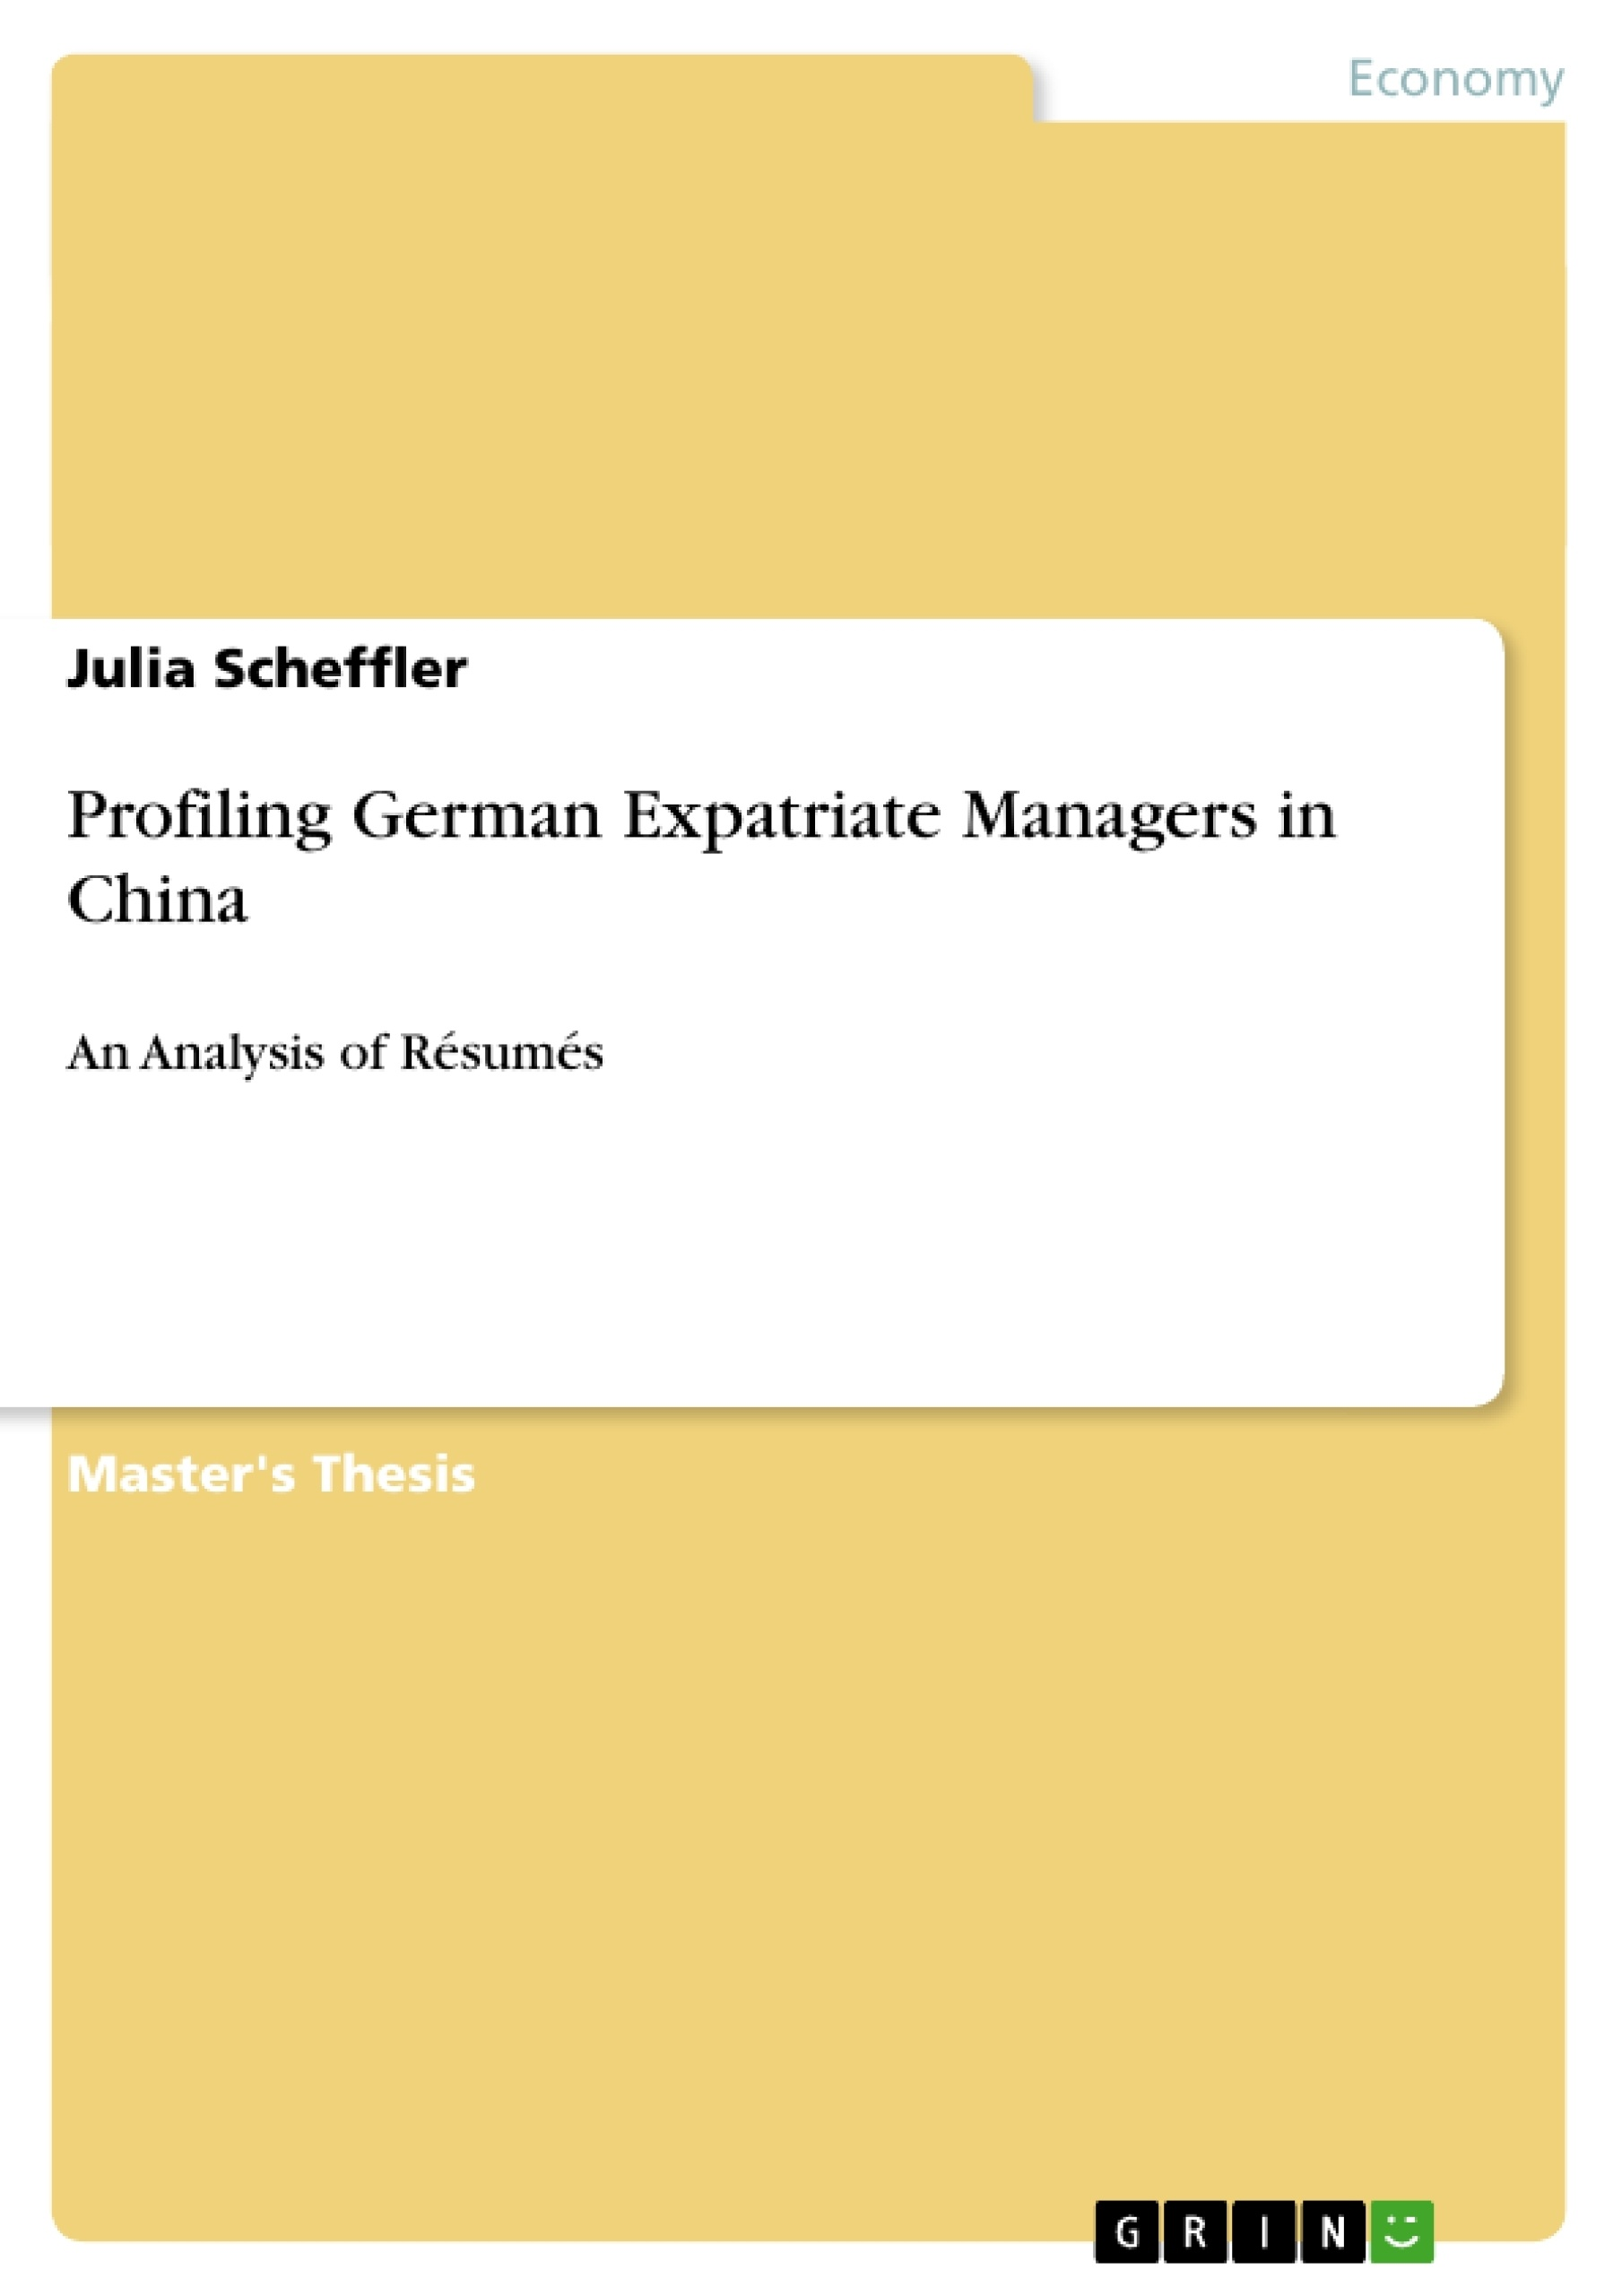 Title: Profiling German Expatriate Managers in China